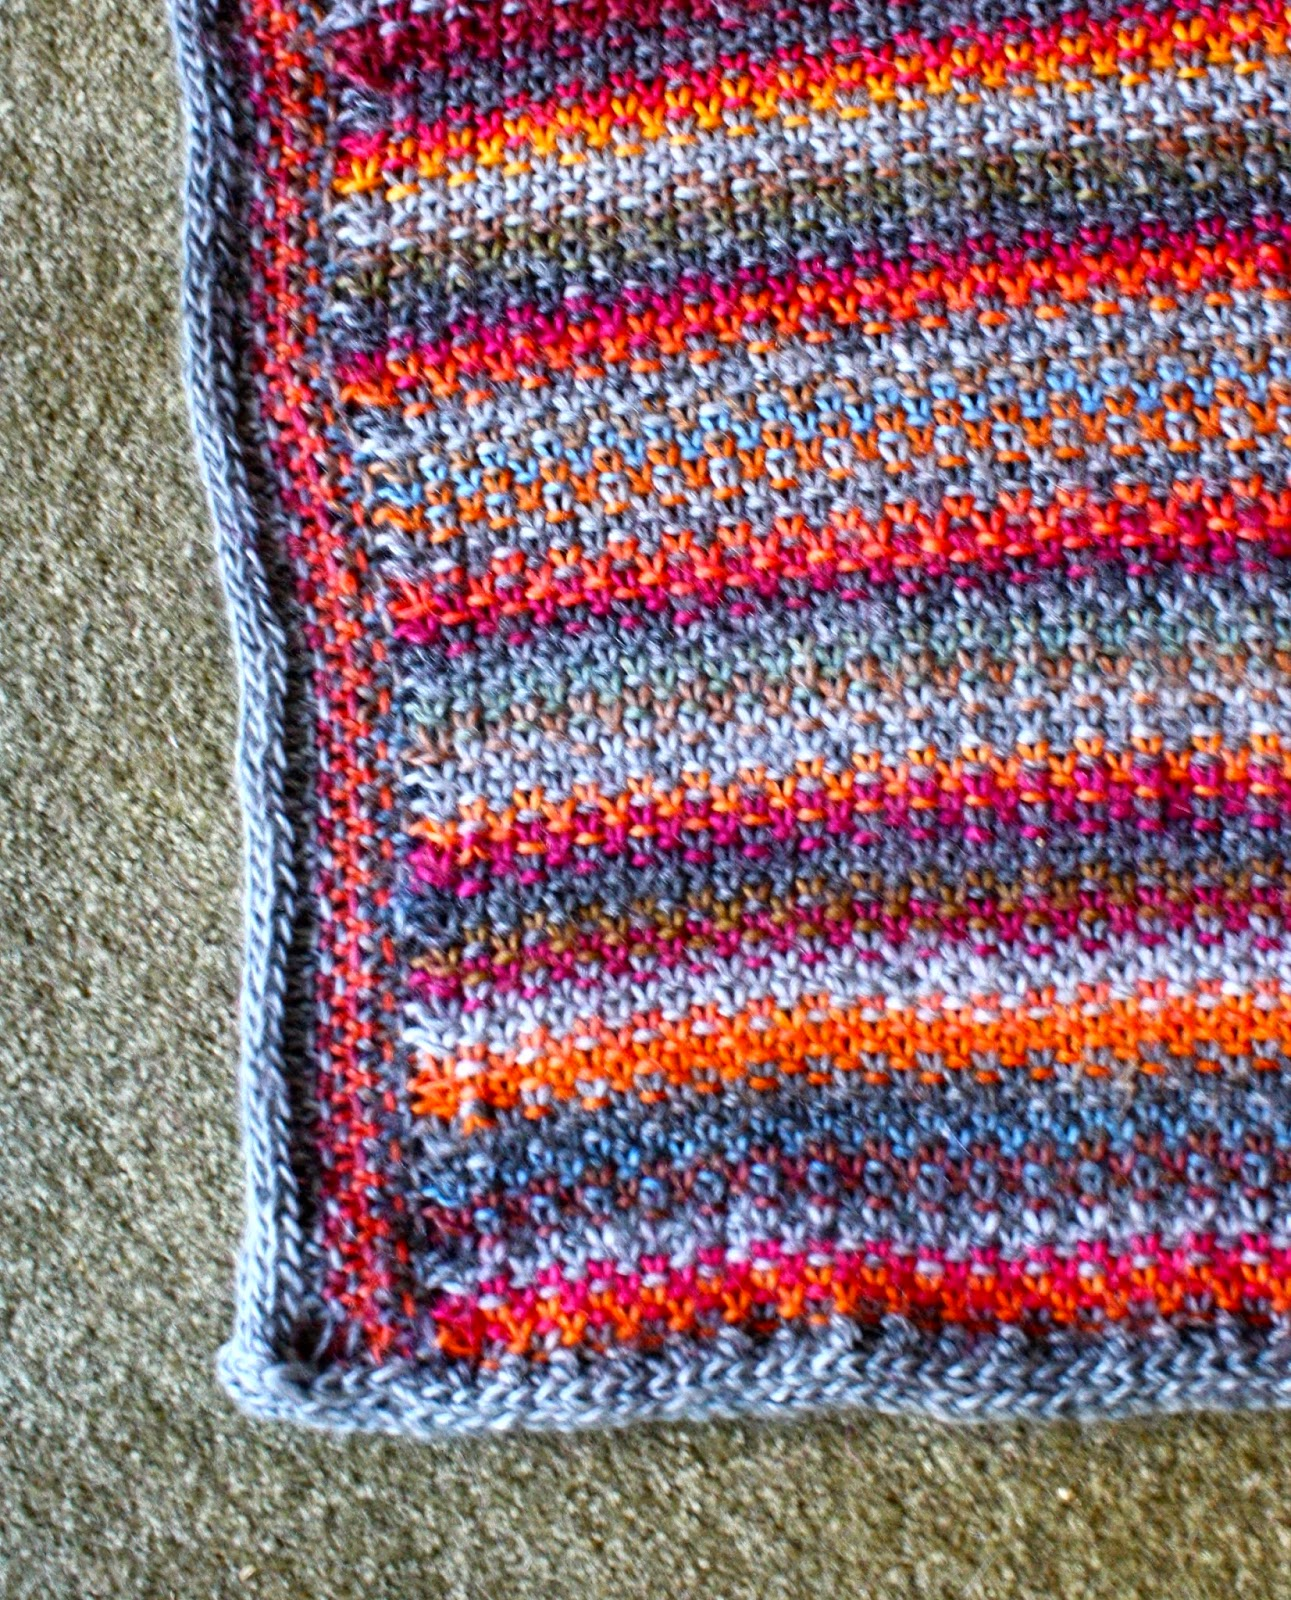 Knitting Linen Stitch Bind Off : QueerJoes Knitting Blog: 03/01/2015 - 04/01/2015